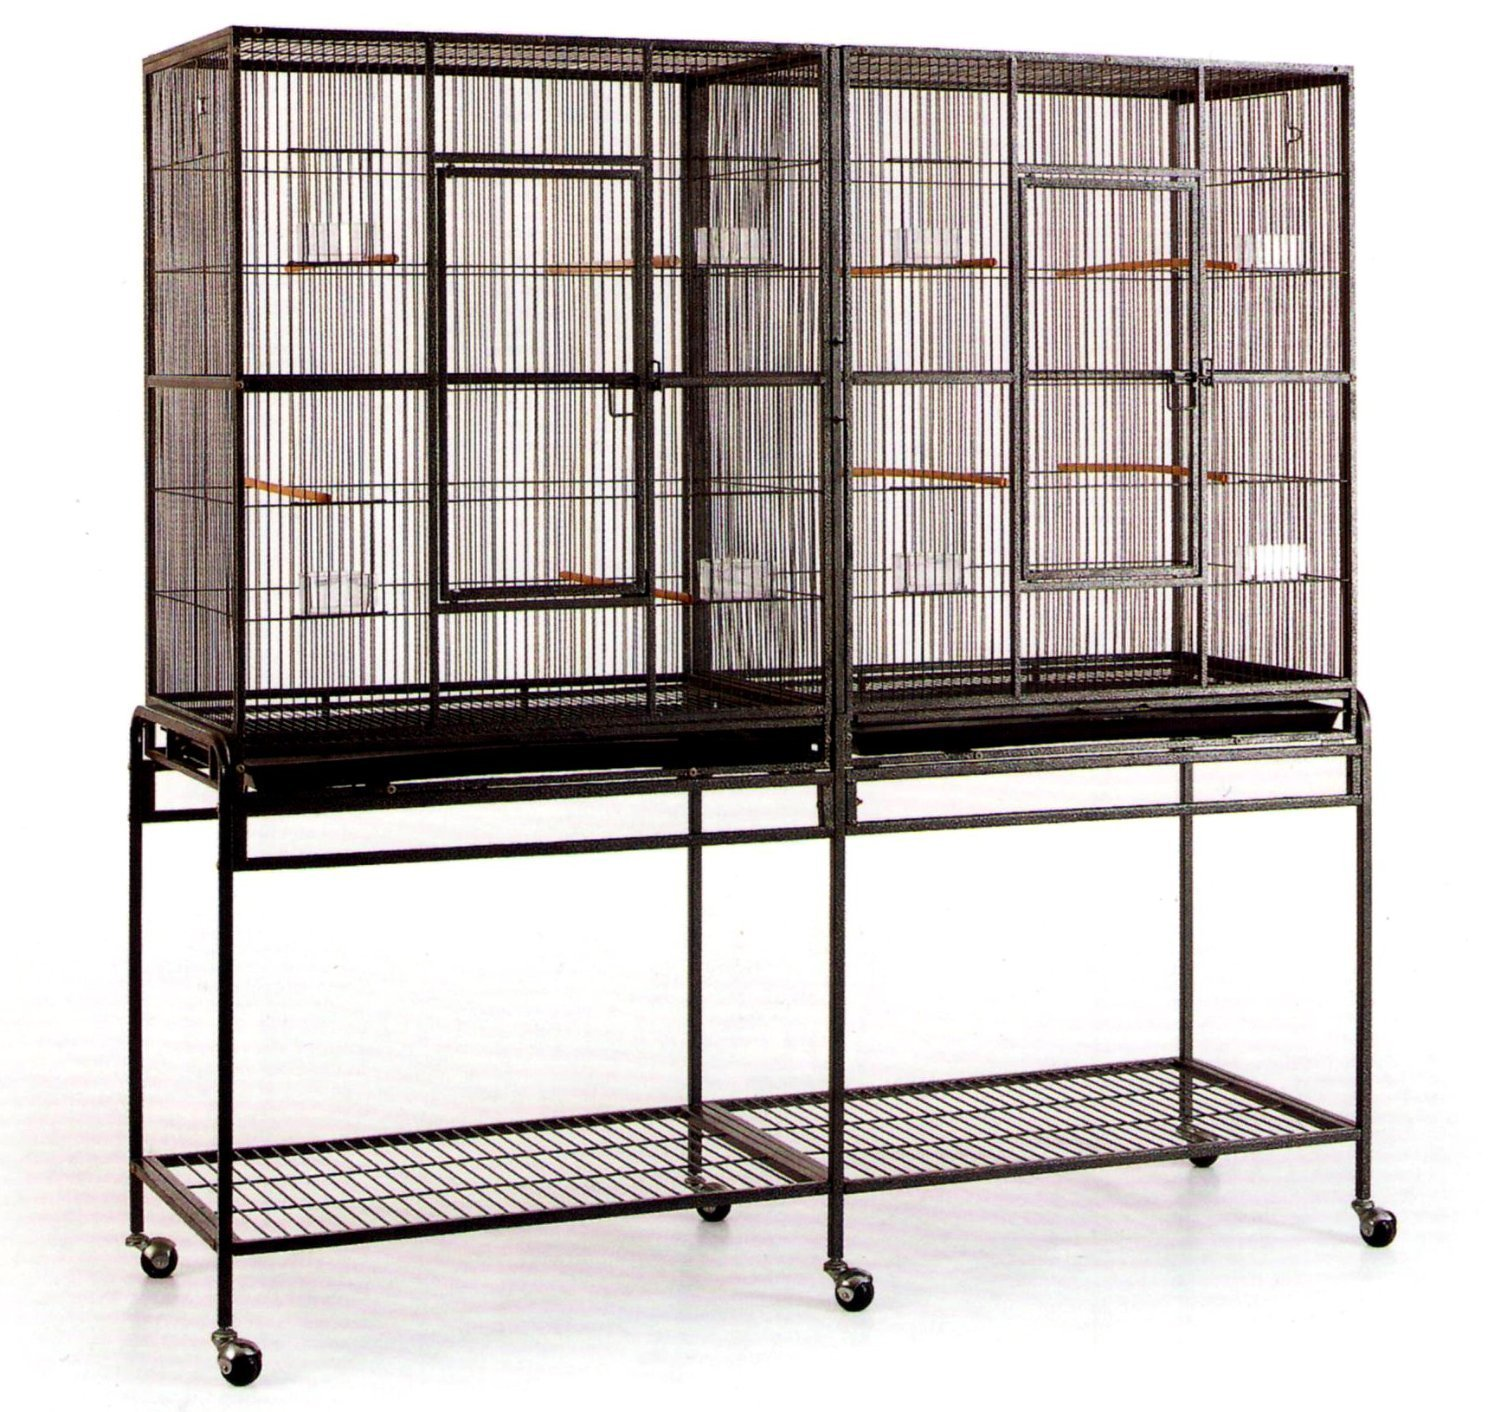 Double Large 3 Level Ferret Chinchilla Sugar Glider Small Animal Wrought Iron Double Cage With Slide Out Divider 63''Length x 19''Depth x 64''Height With Removable Rolling Stand on Wheels *Black Vein*